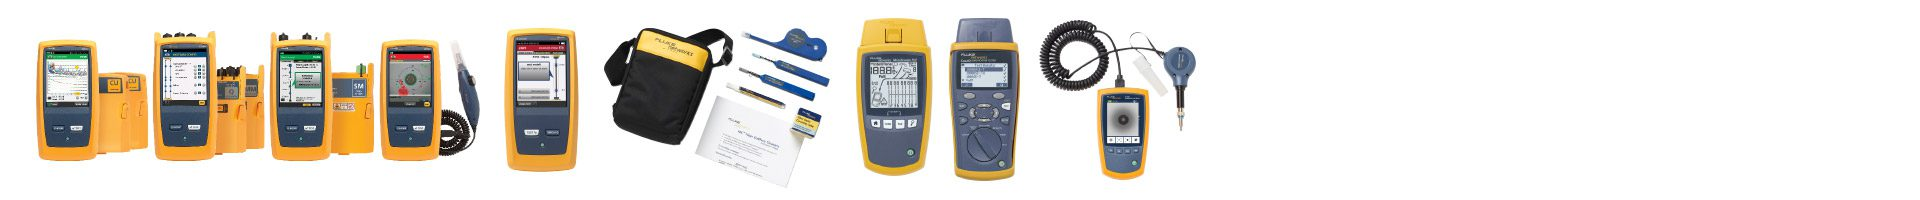 Fluke Networks featured products